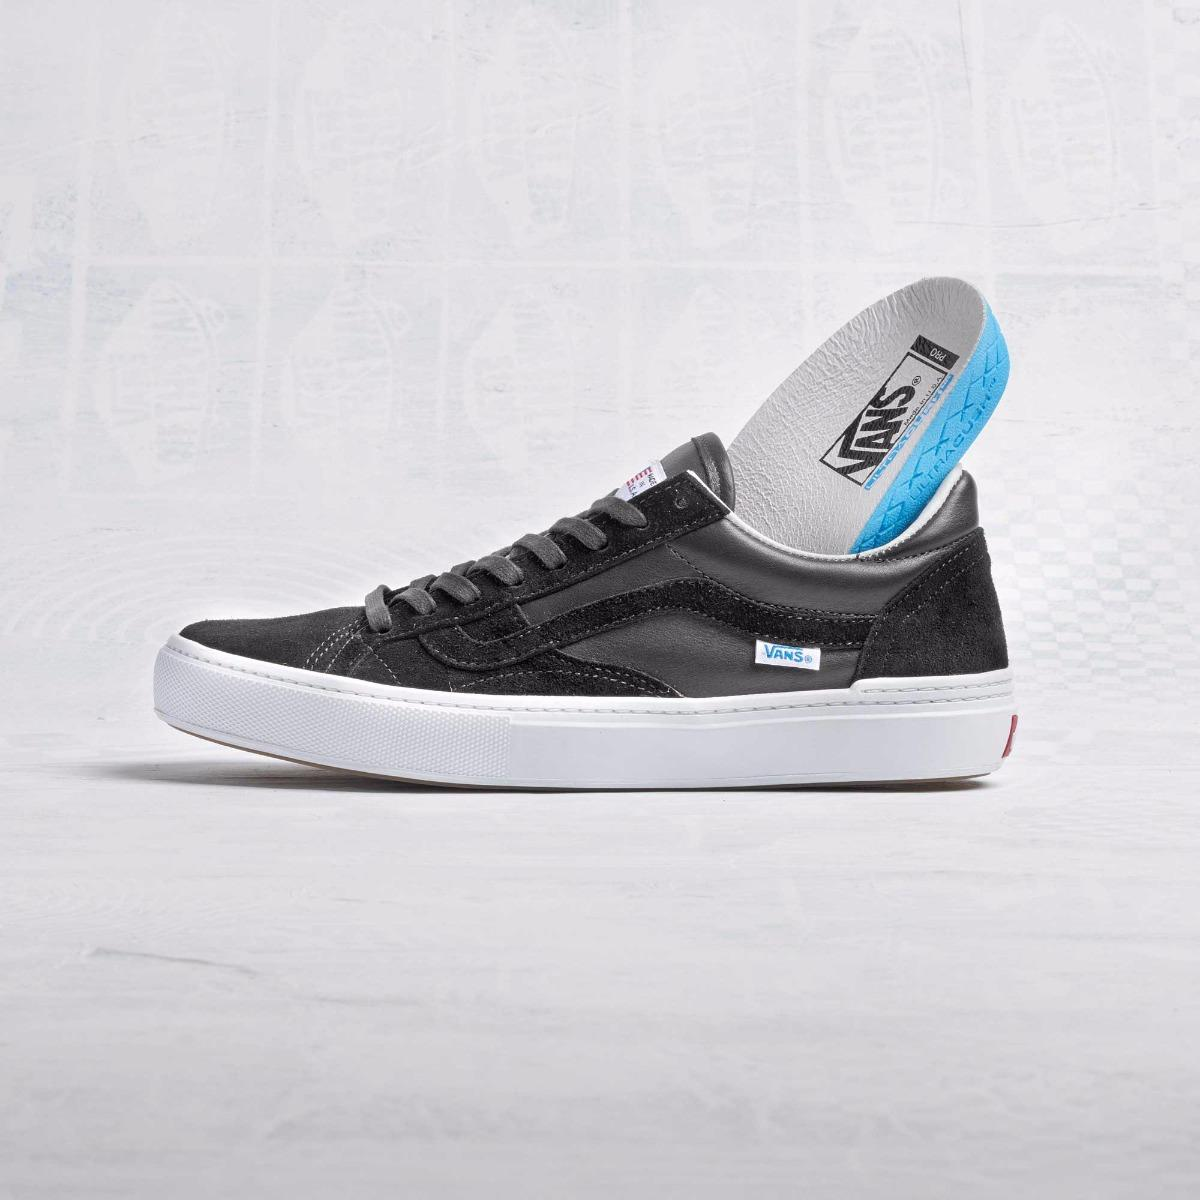 6d9e430f87 Vans Pro Skate ArcAd denotes an individually-numbered